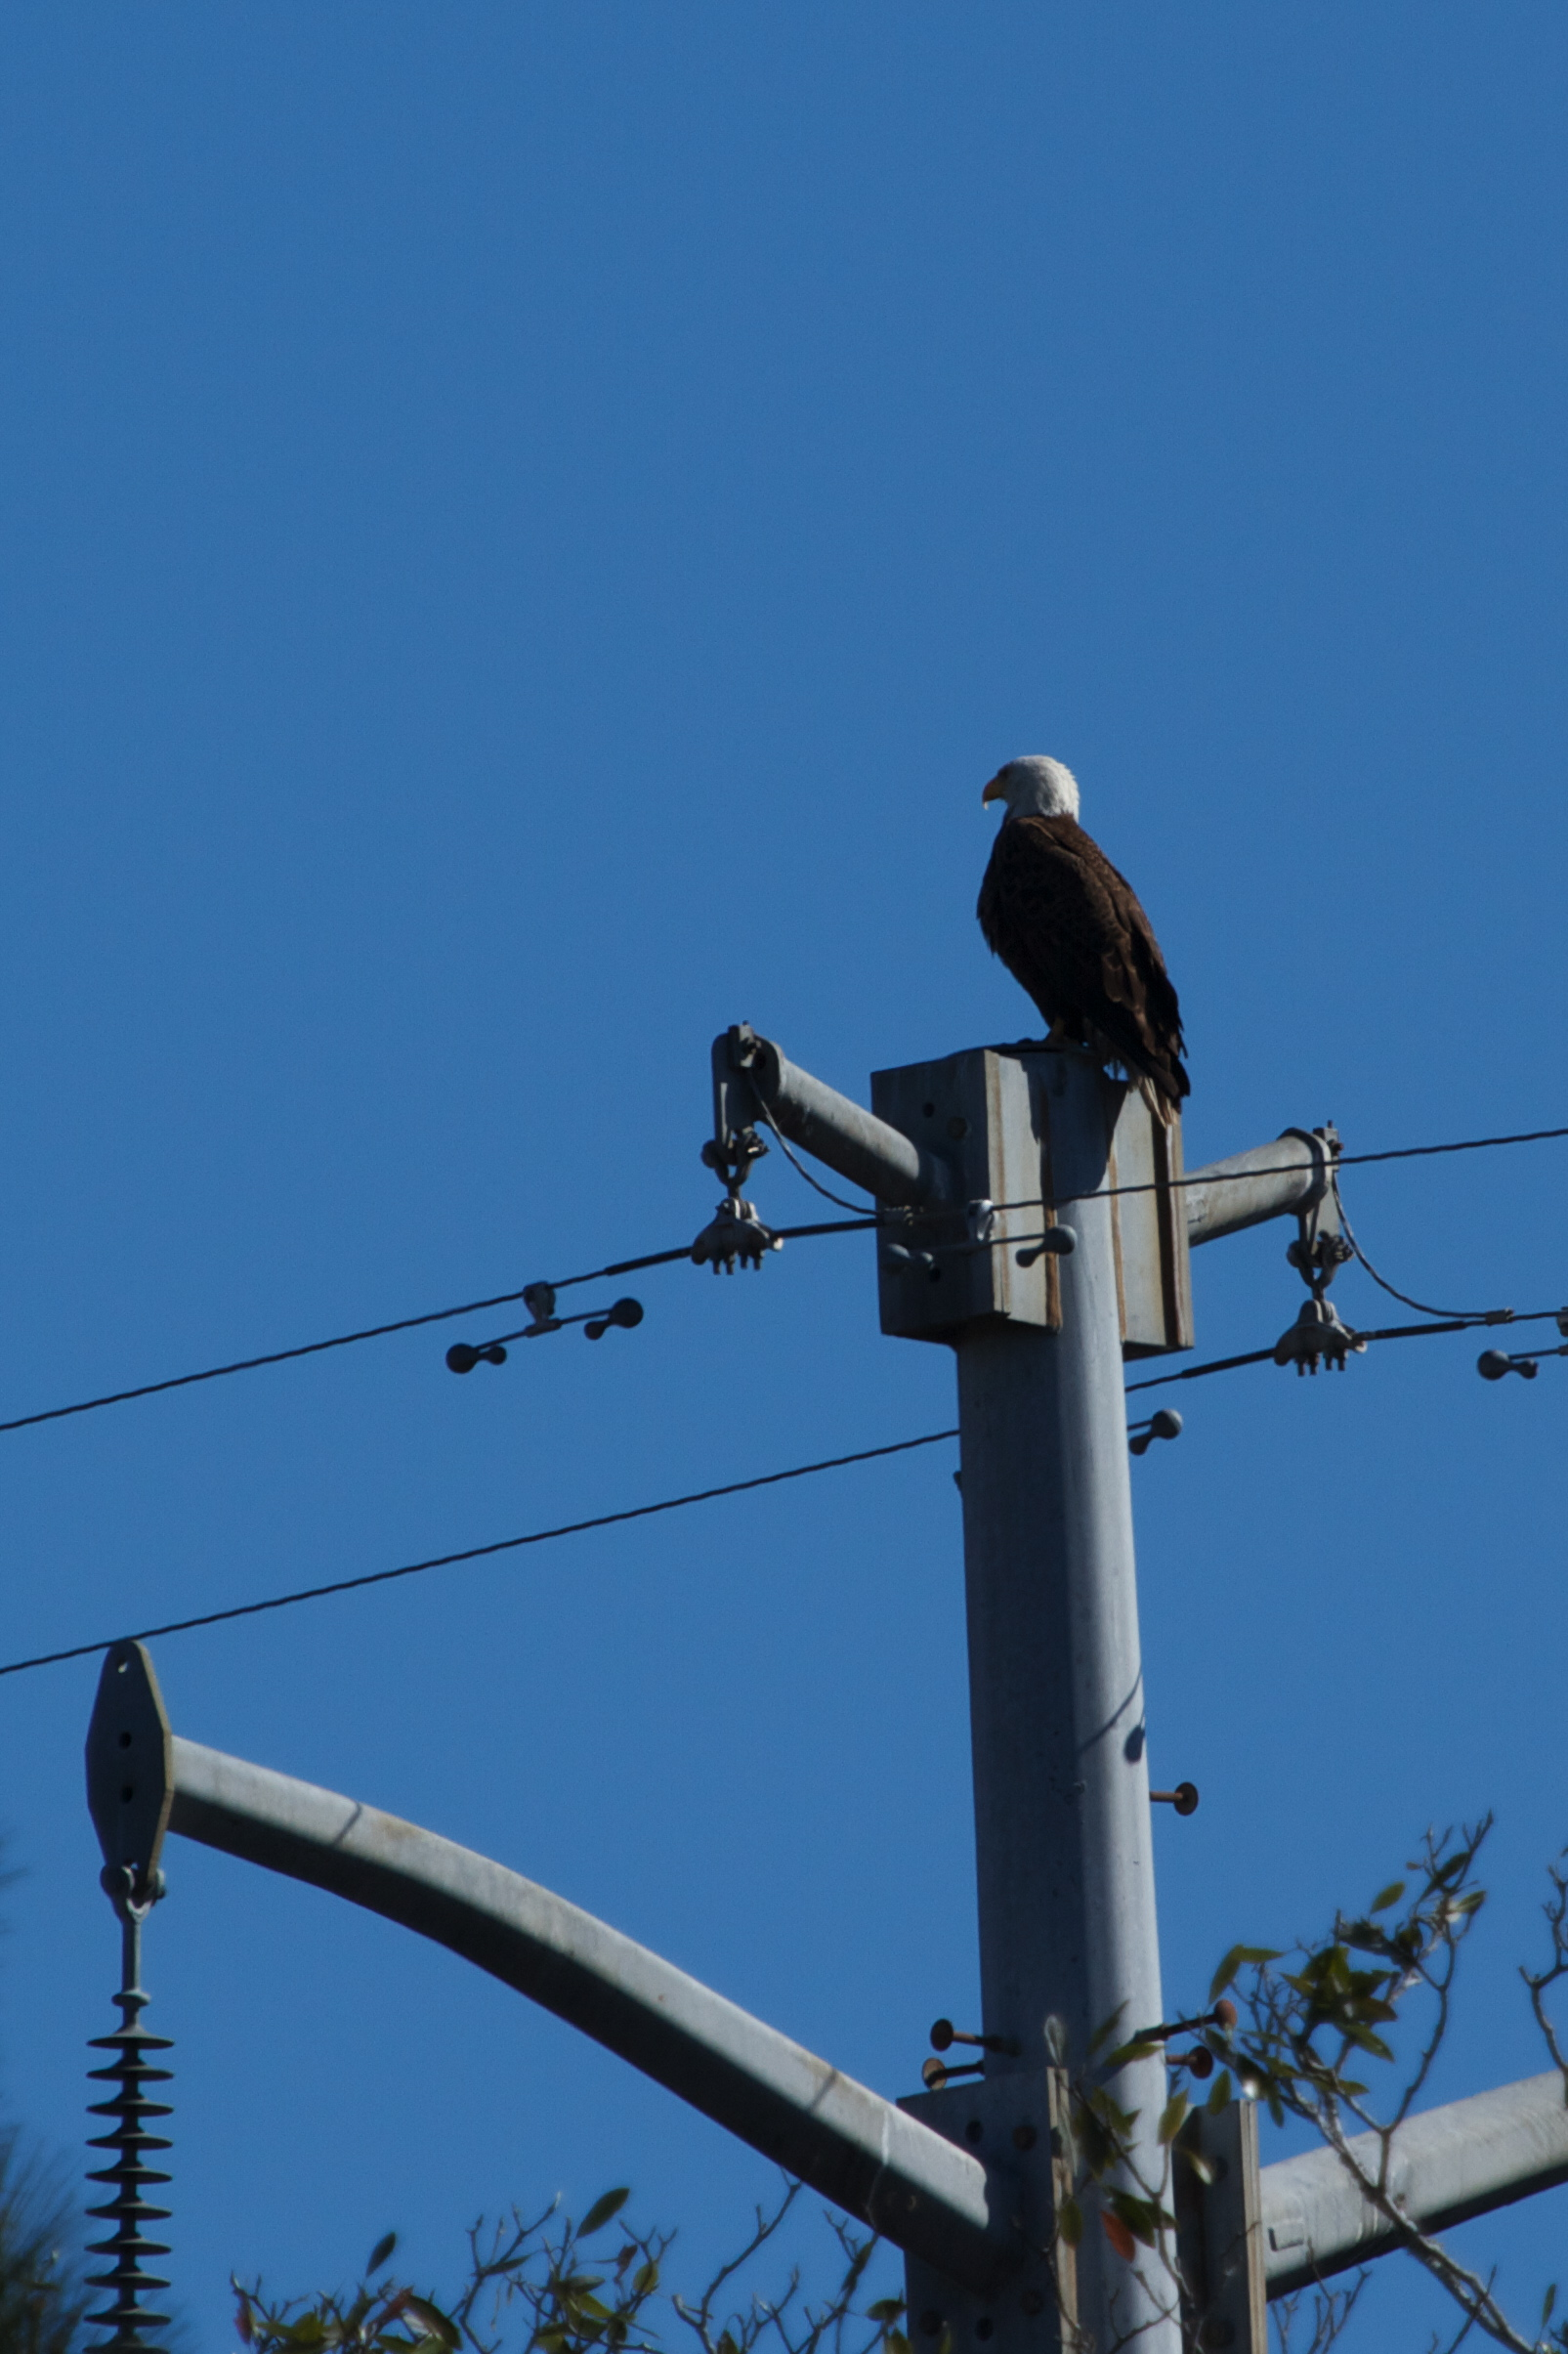 The Bald Eagle keeps an eye on Goose Pond!